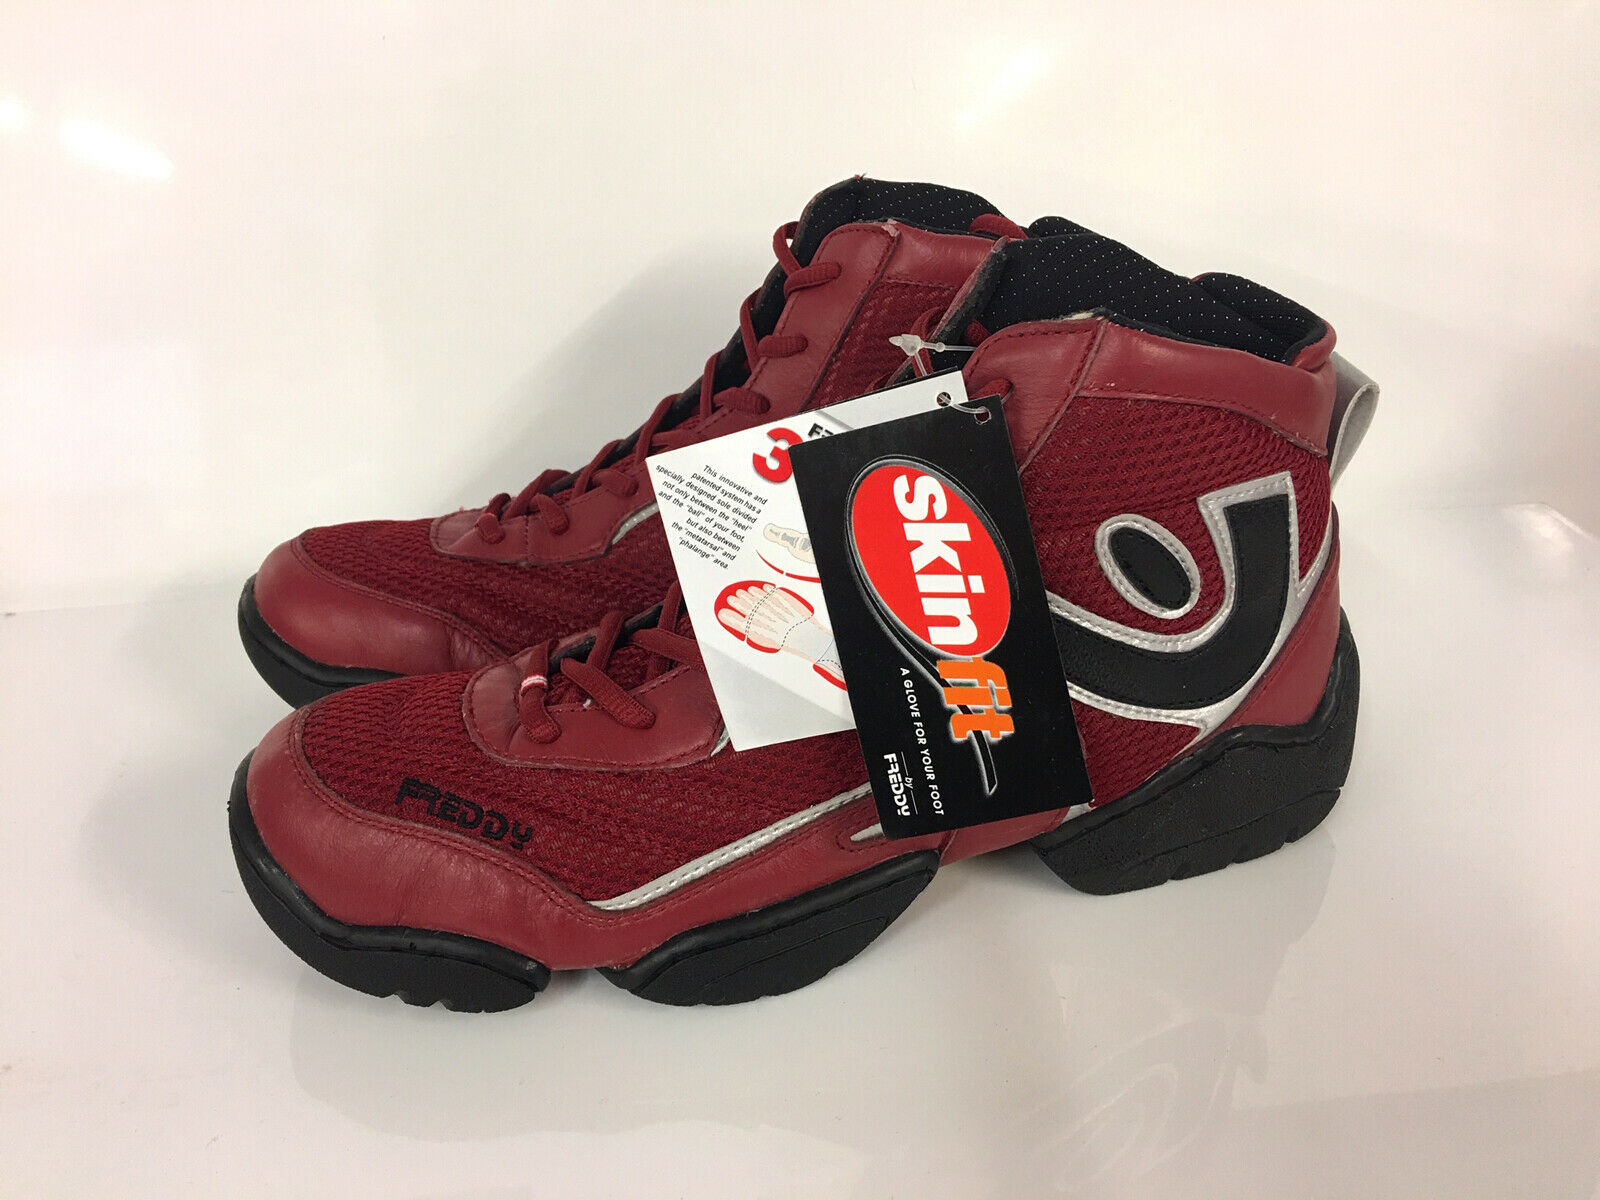 9299acb0658a0 FREDDY 3 PRO Mens 3 Piece Outer-Sole Impact Technology Mid High Red  Trainers 43